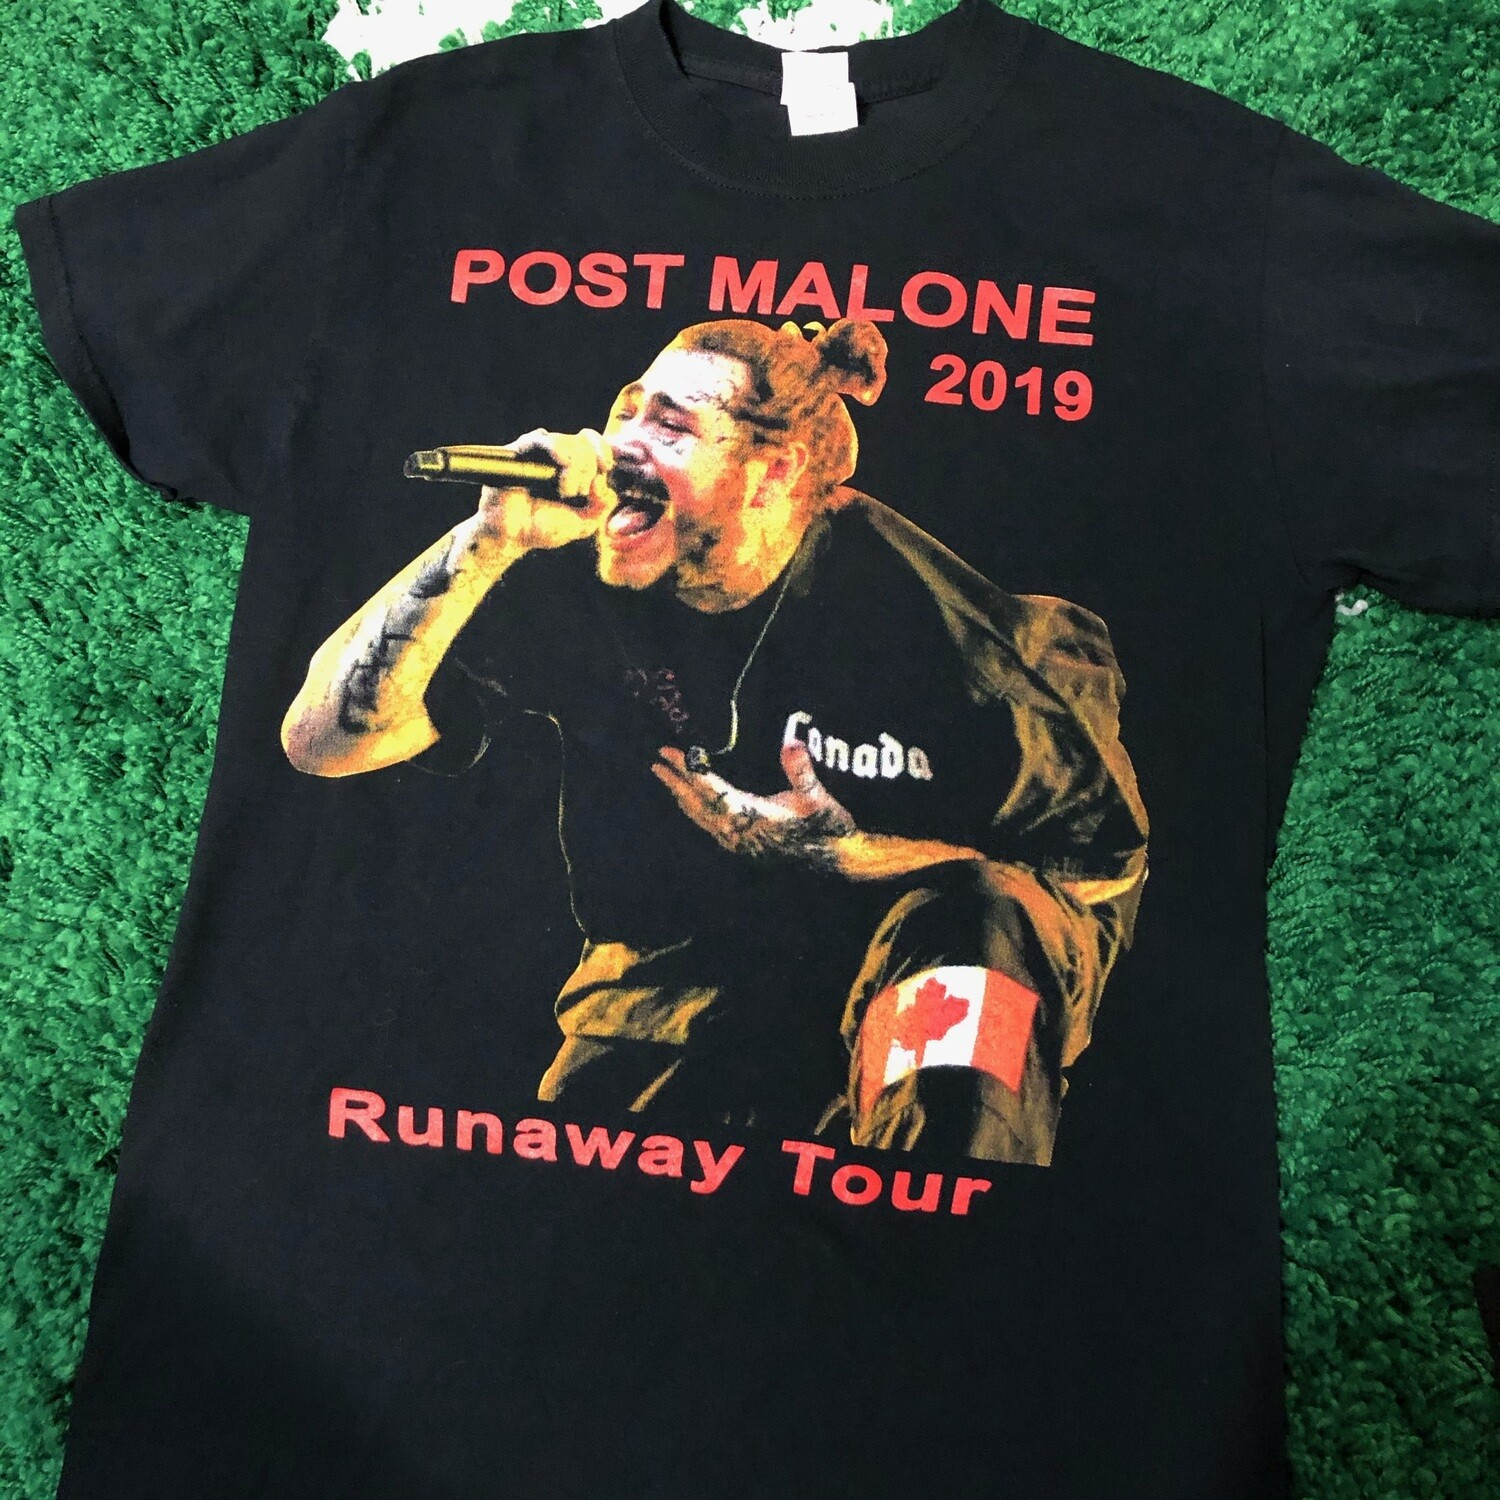 Post Malone 2019 Tour Shirt Size Small